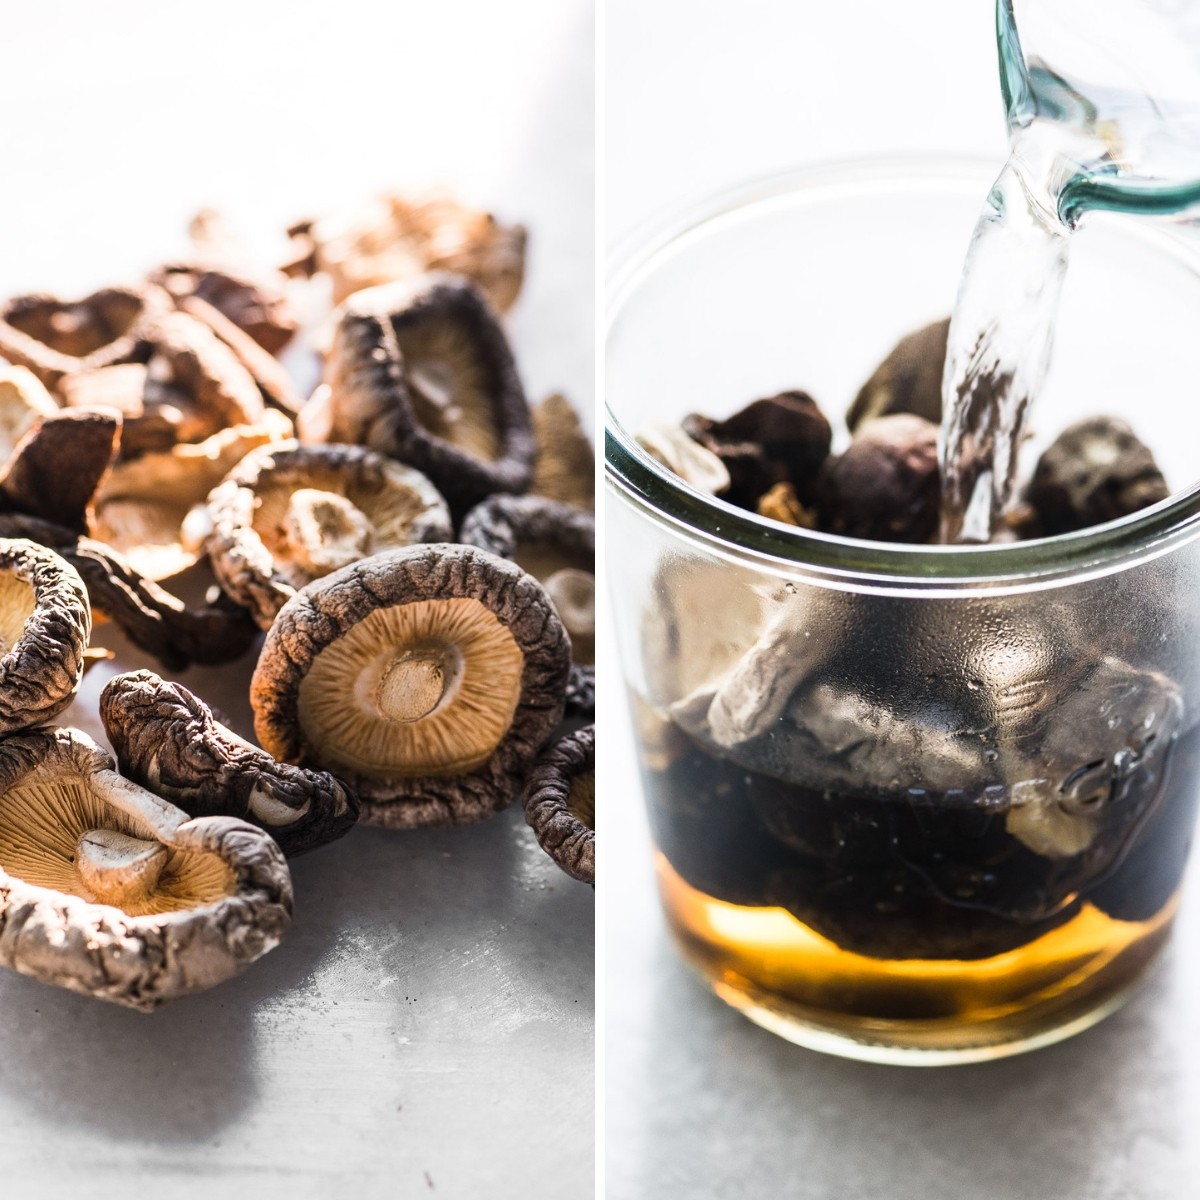 re-hydrating dried wild mushrooms